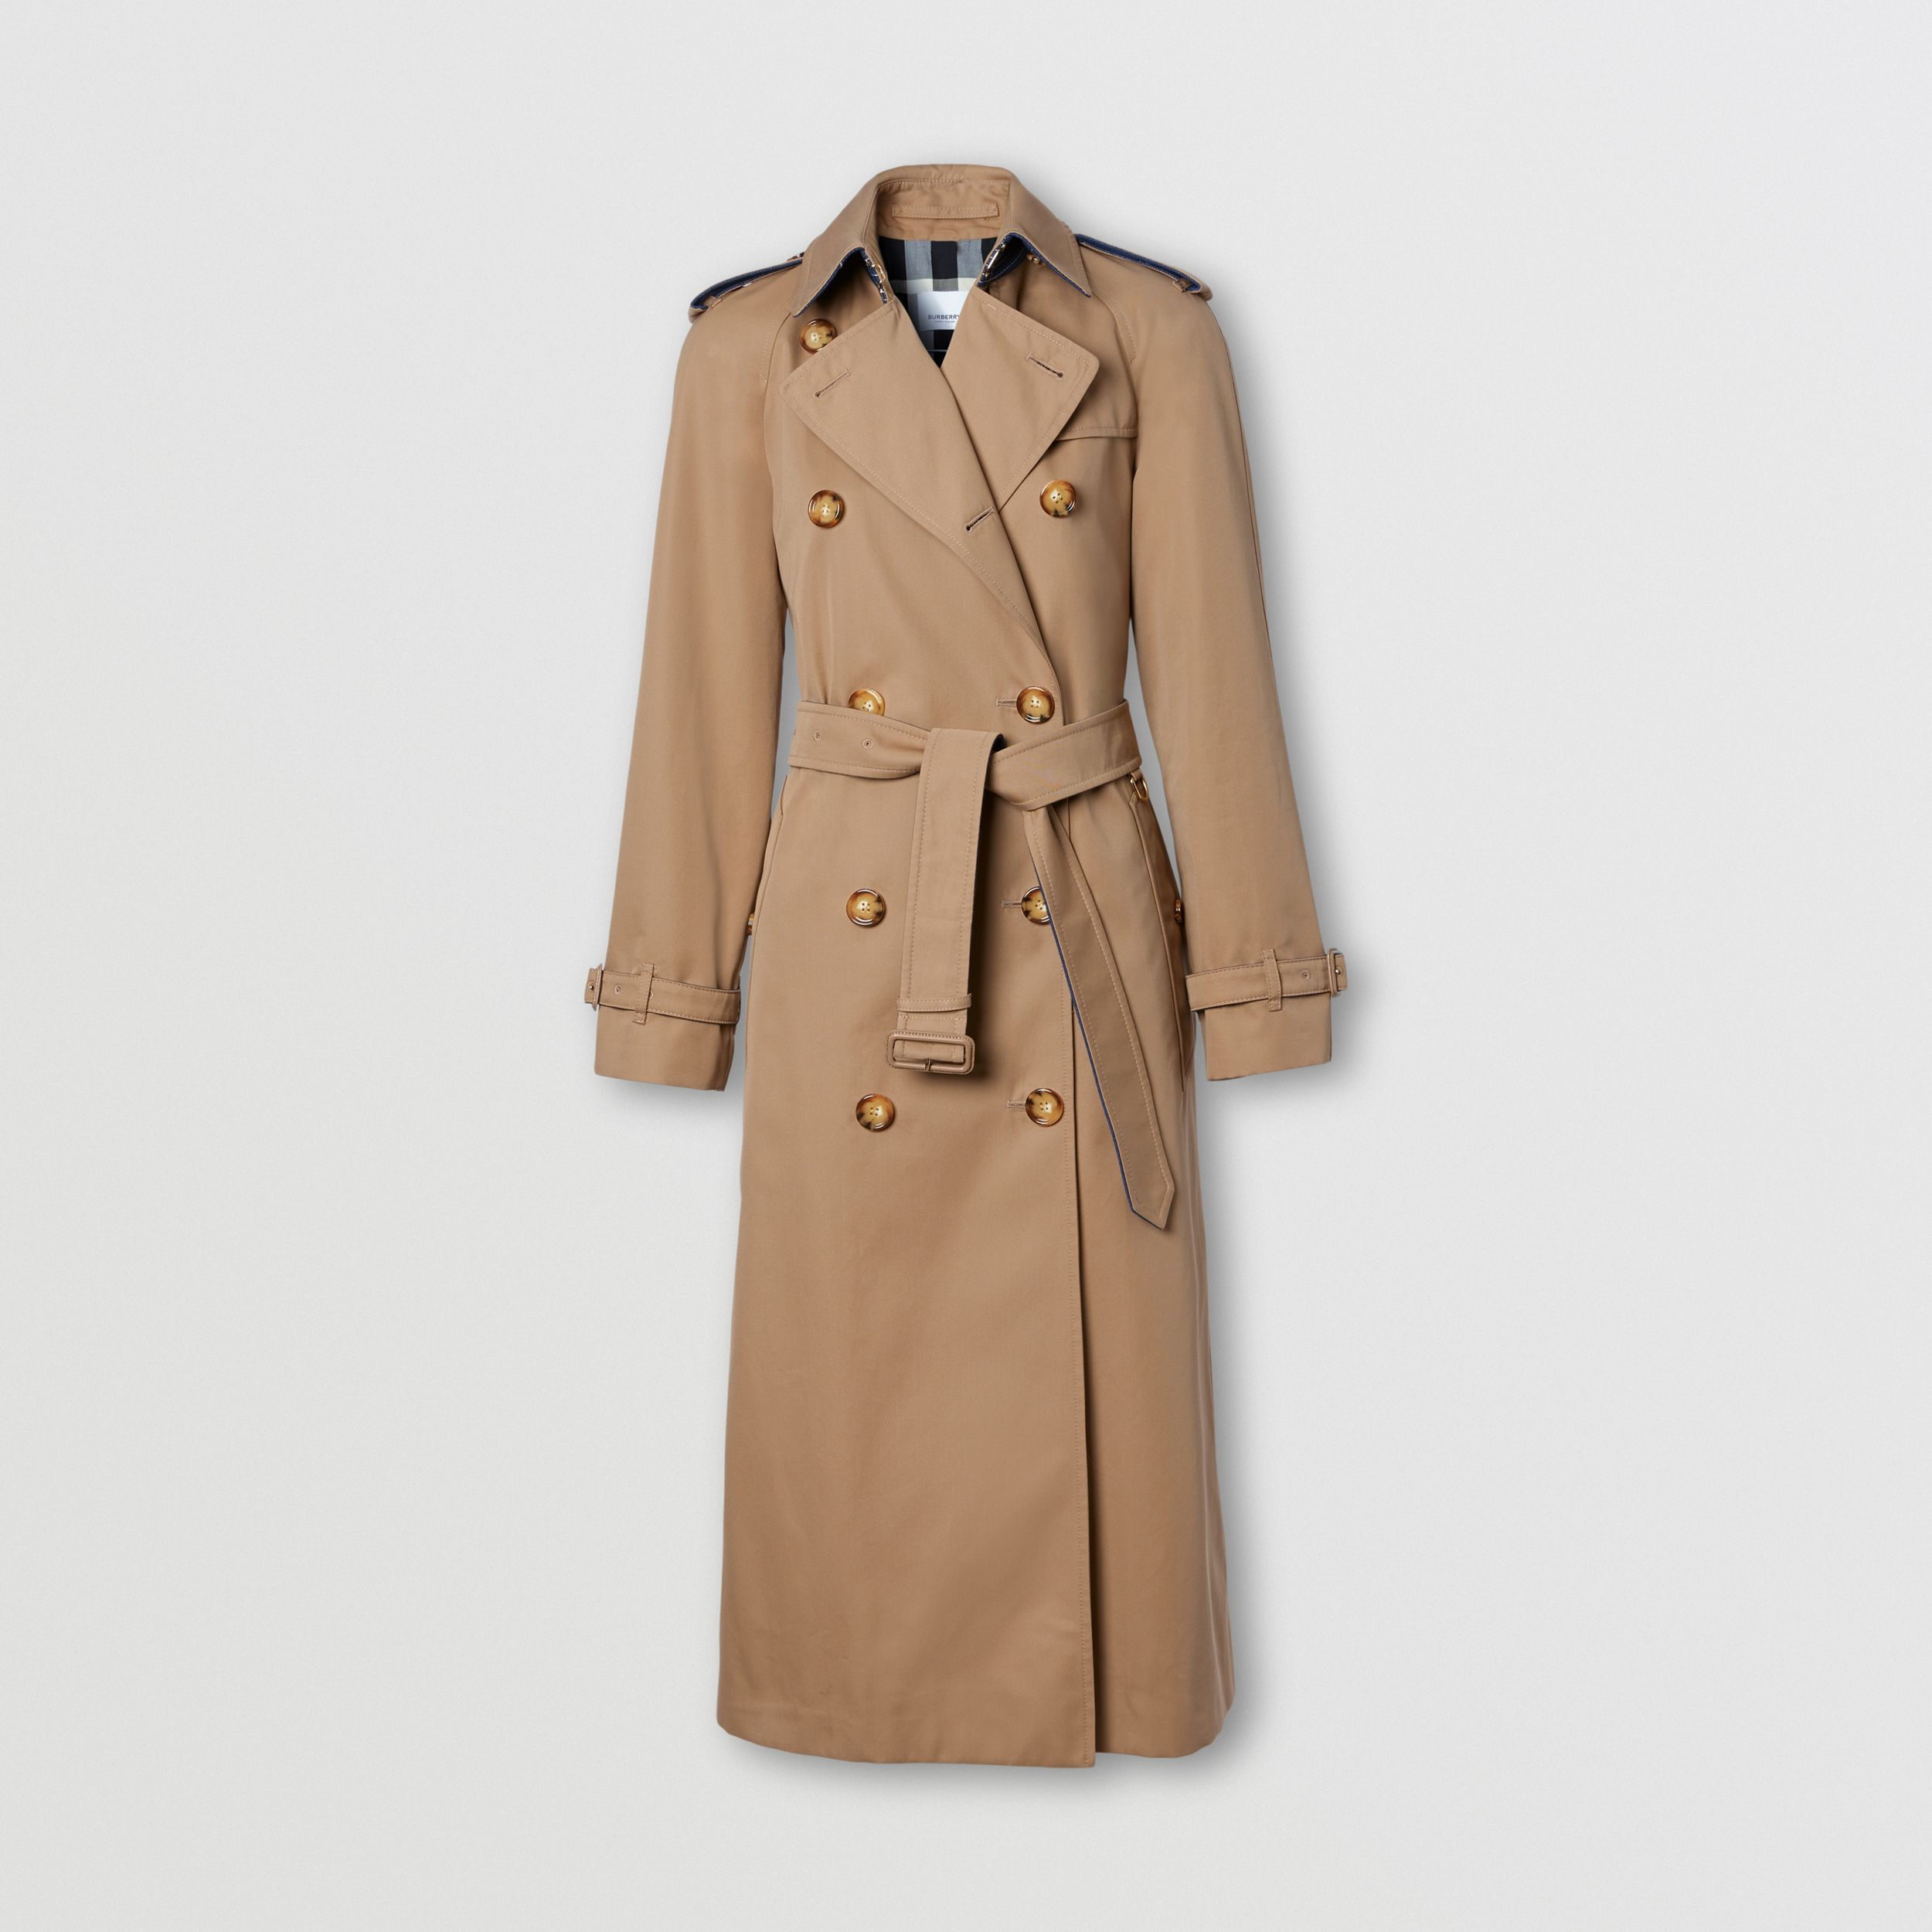 Denim Detail Cotton Gabardine Trench Coat in Camel - Women | Burberry - 4